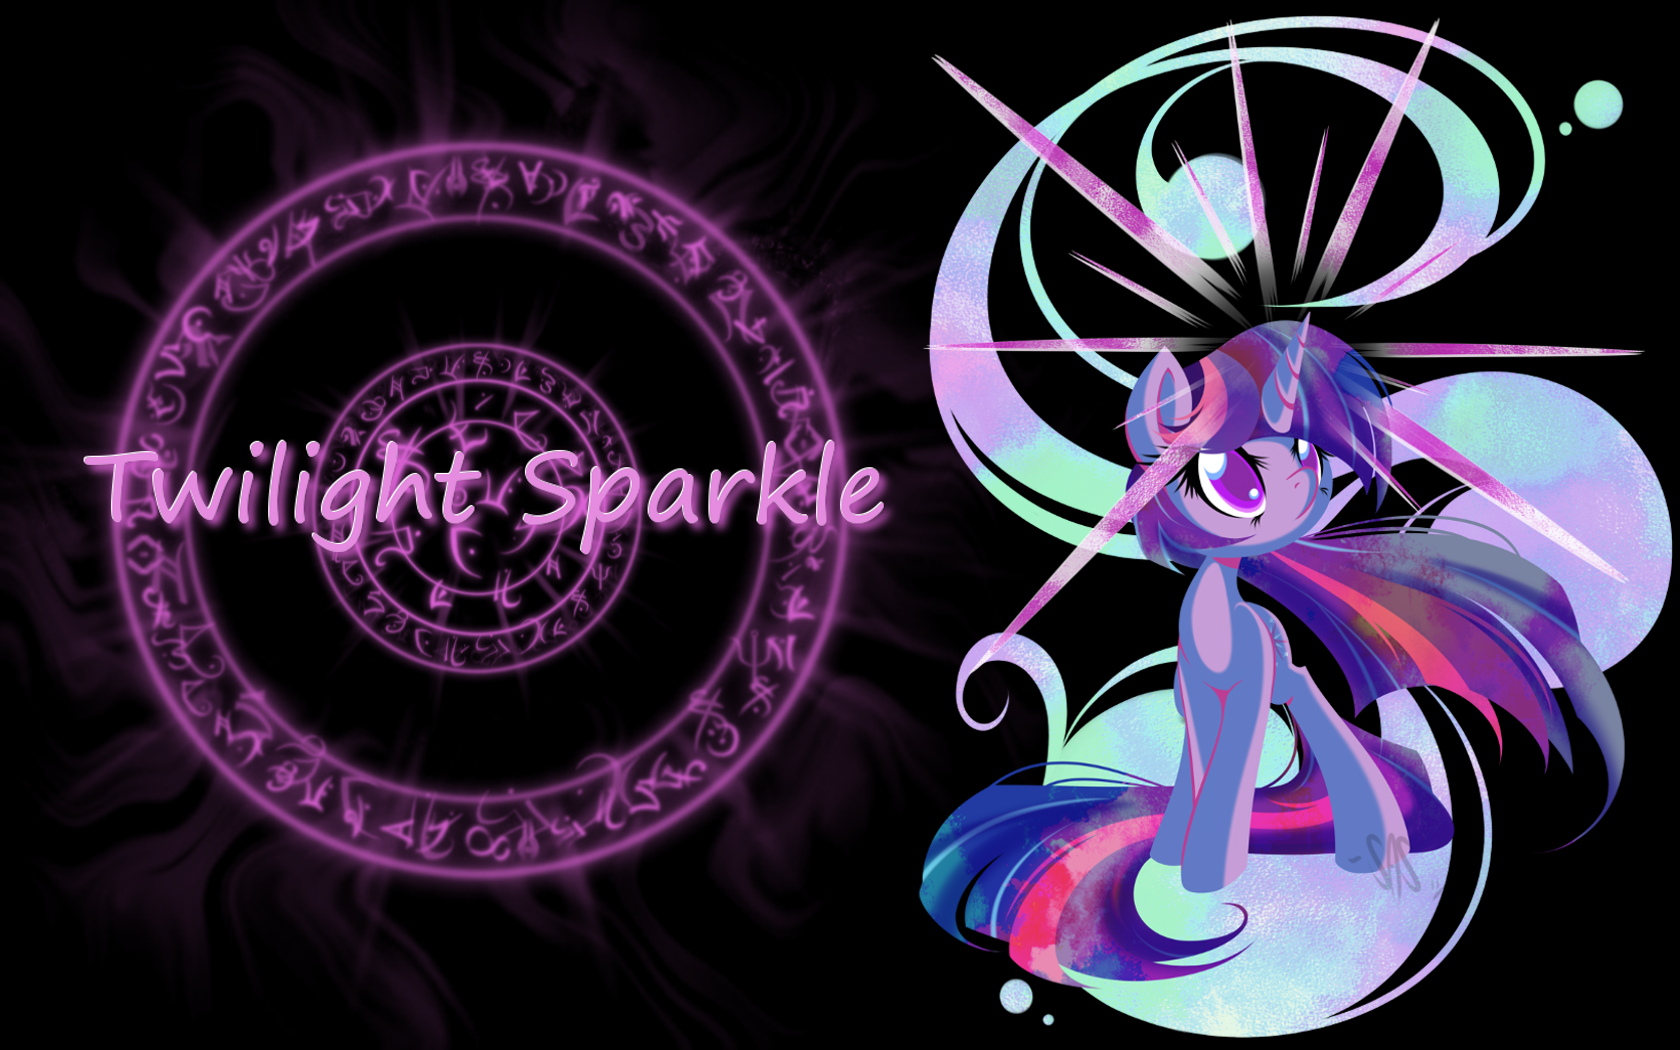 Download Twilight Sparkle Phone Wallpaper Gallery